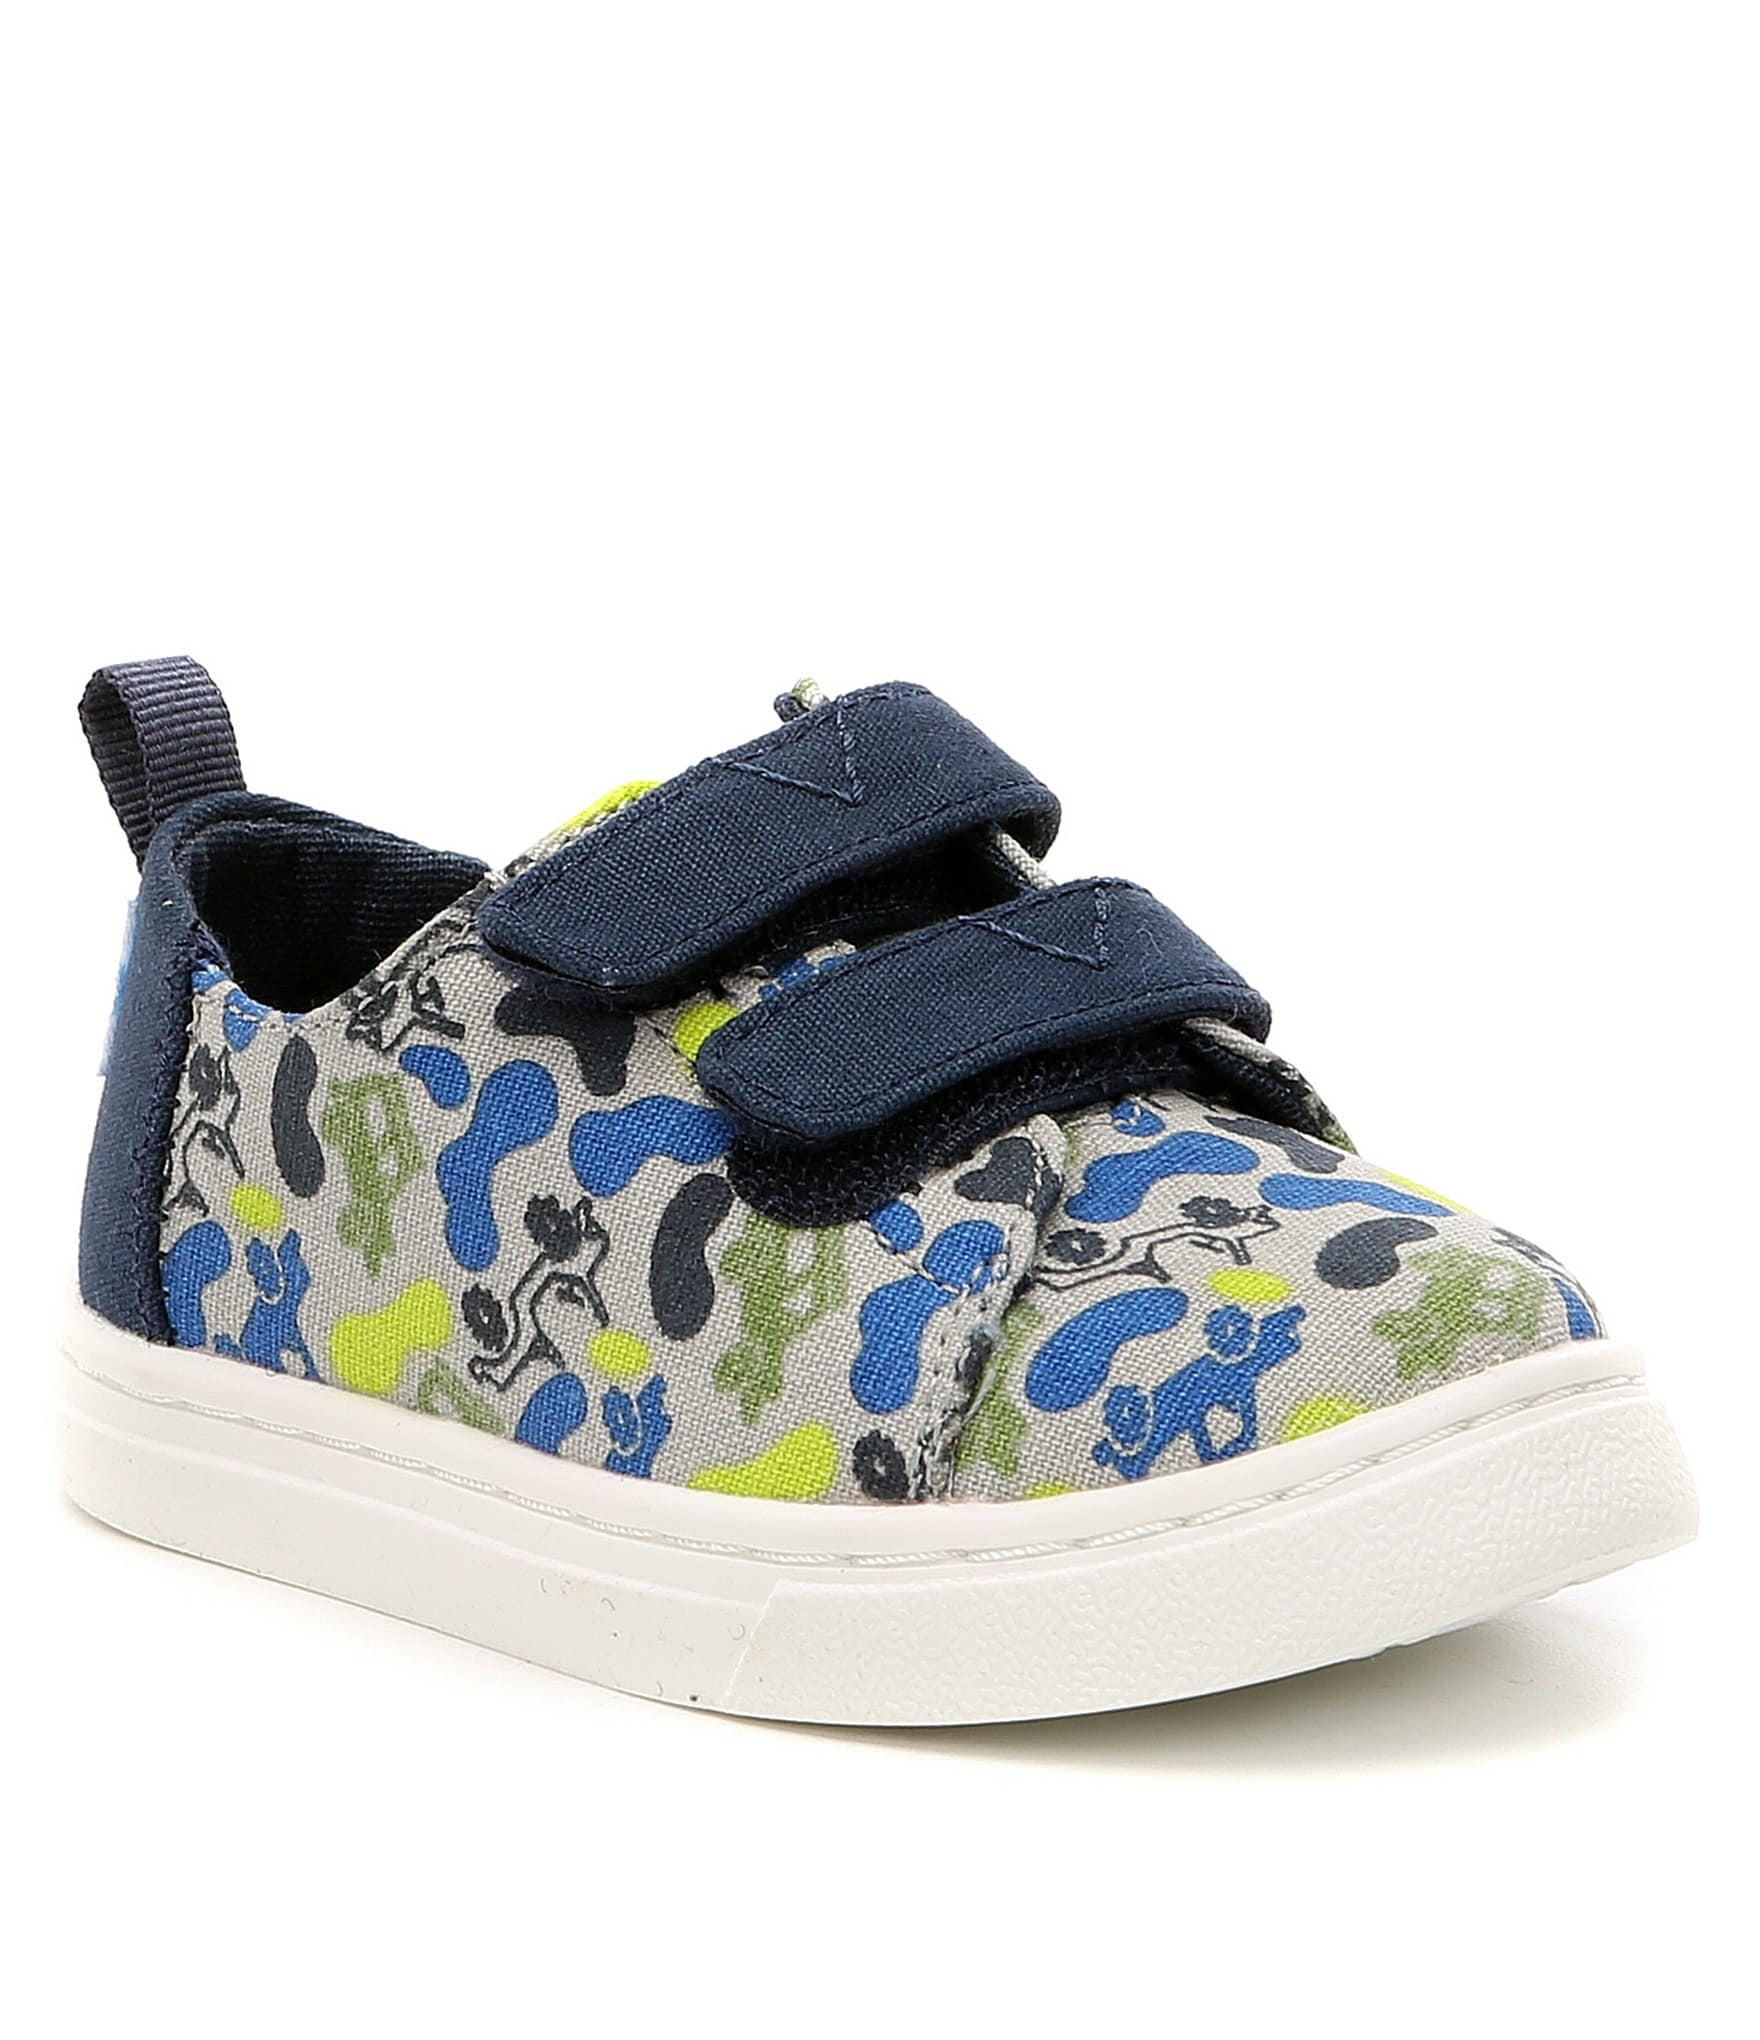 Clearance Toms Shoes For Toddlers